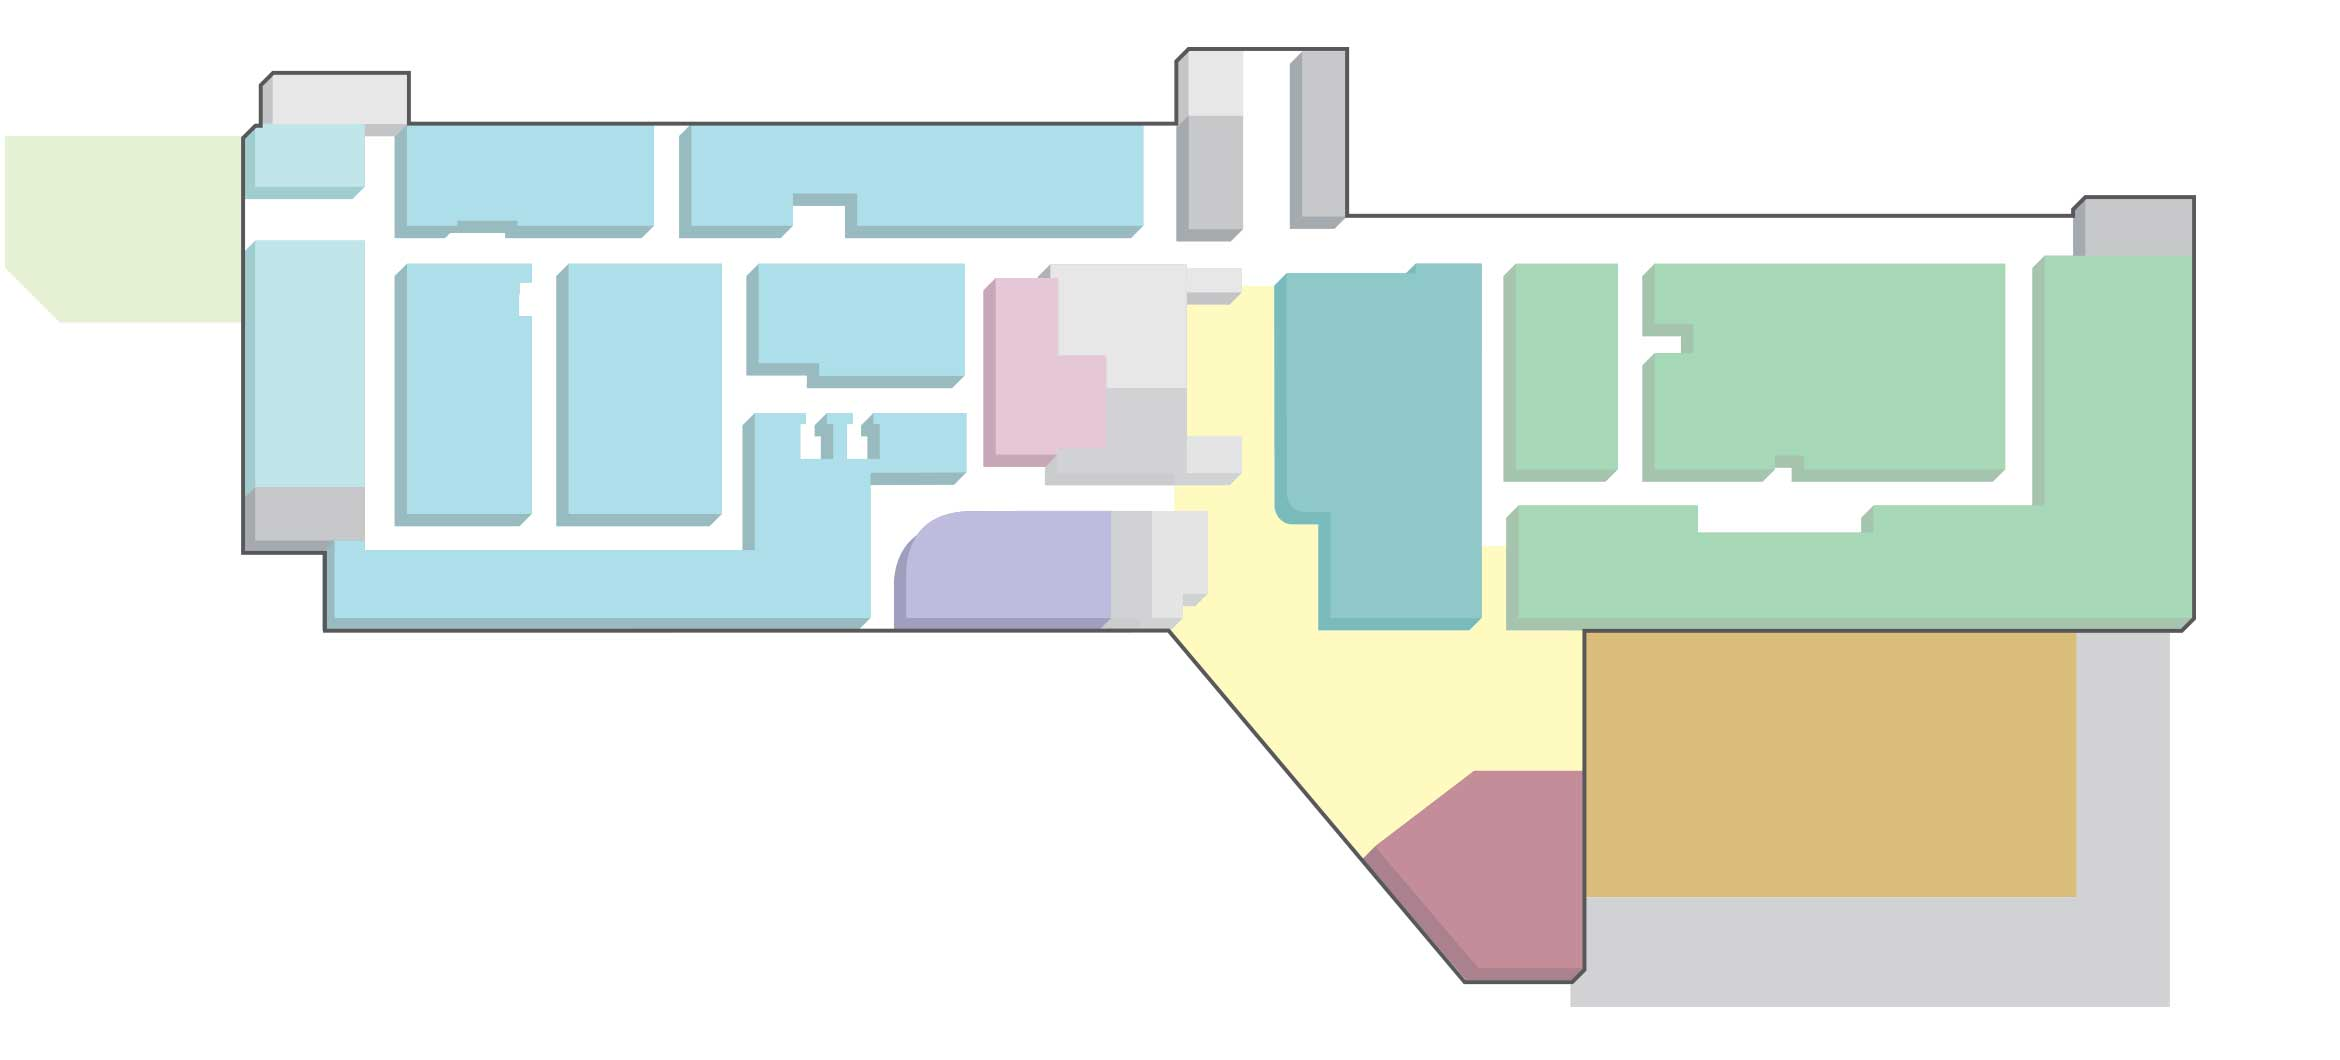 First Floor Floor Plan